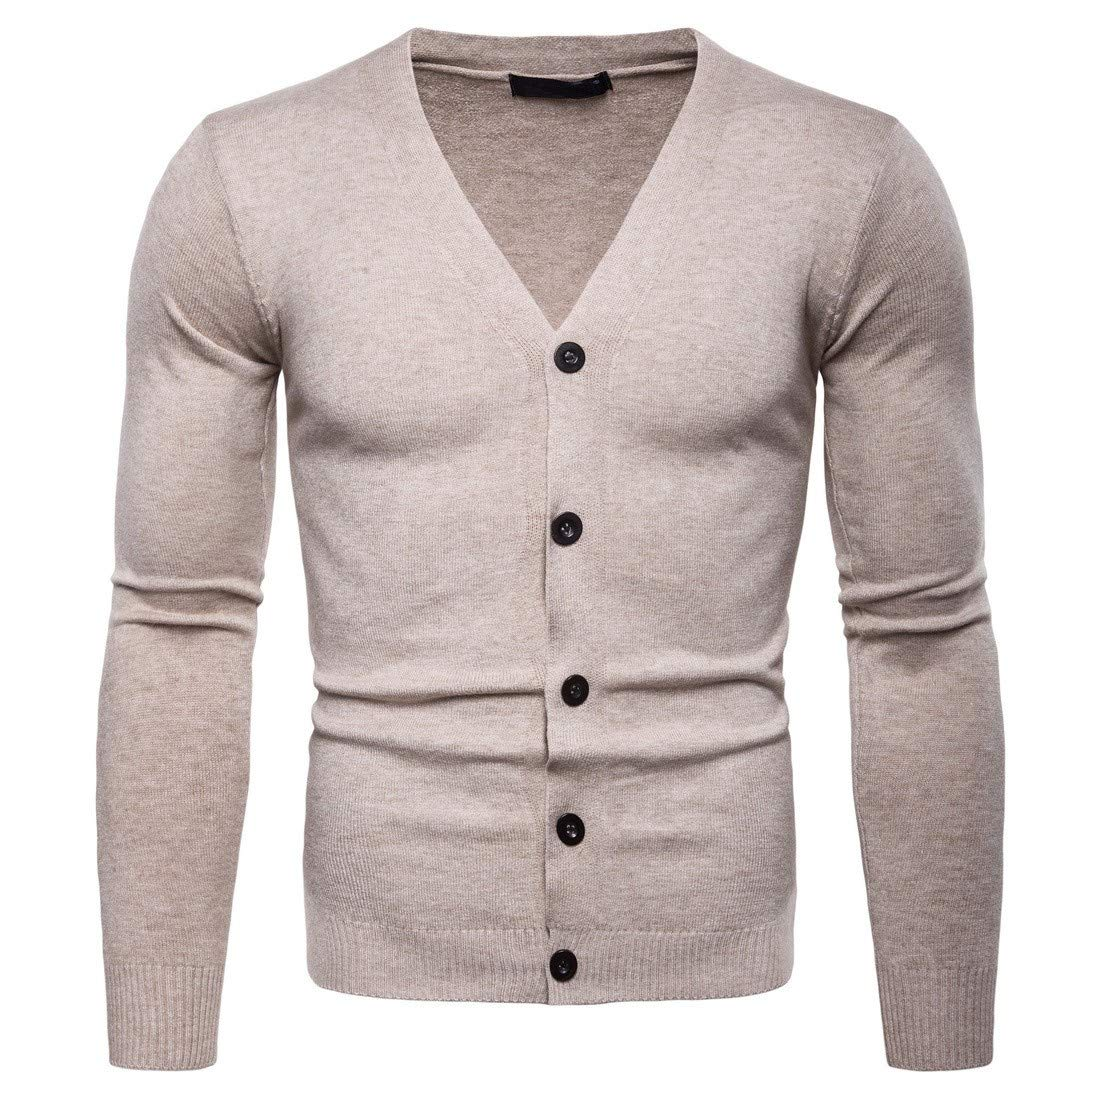 AngelSpace Mens Cardi Solid-Colored Classic Wild Tshirt Sweater